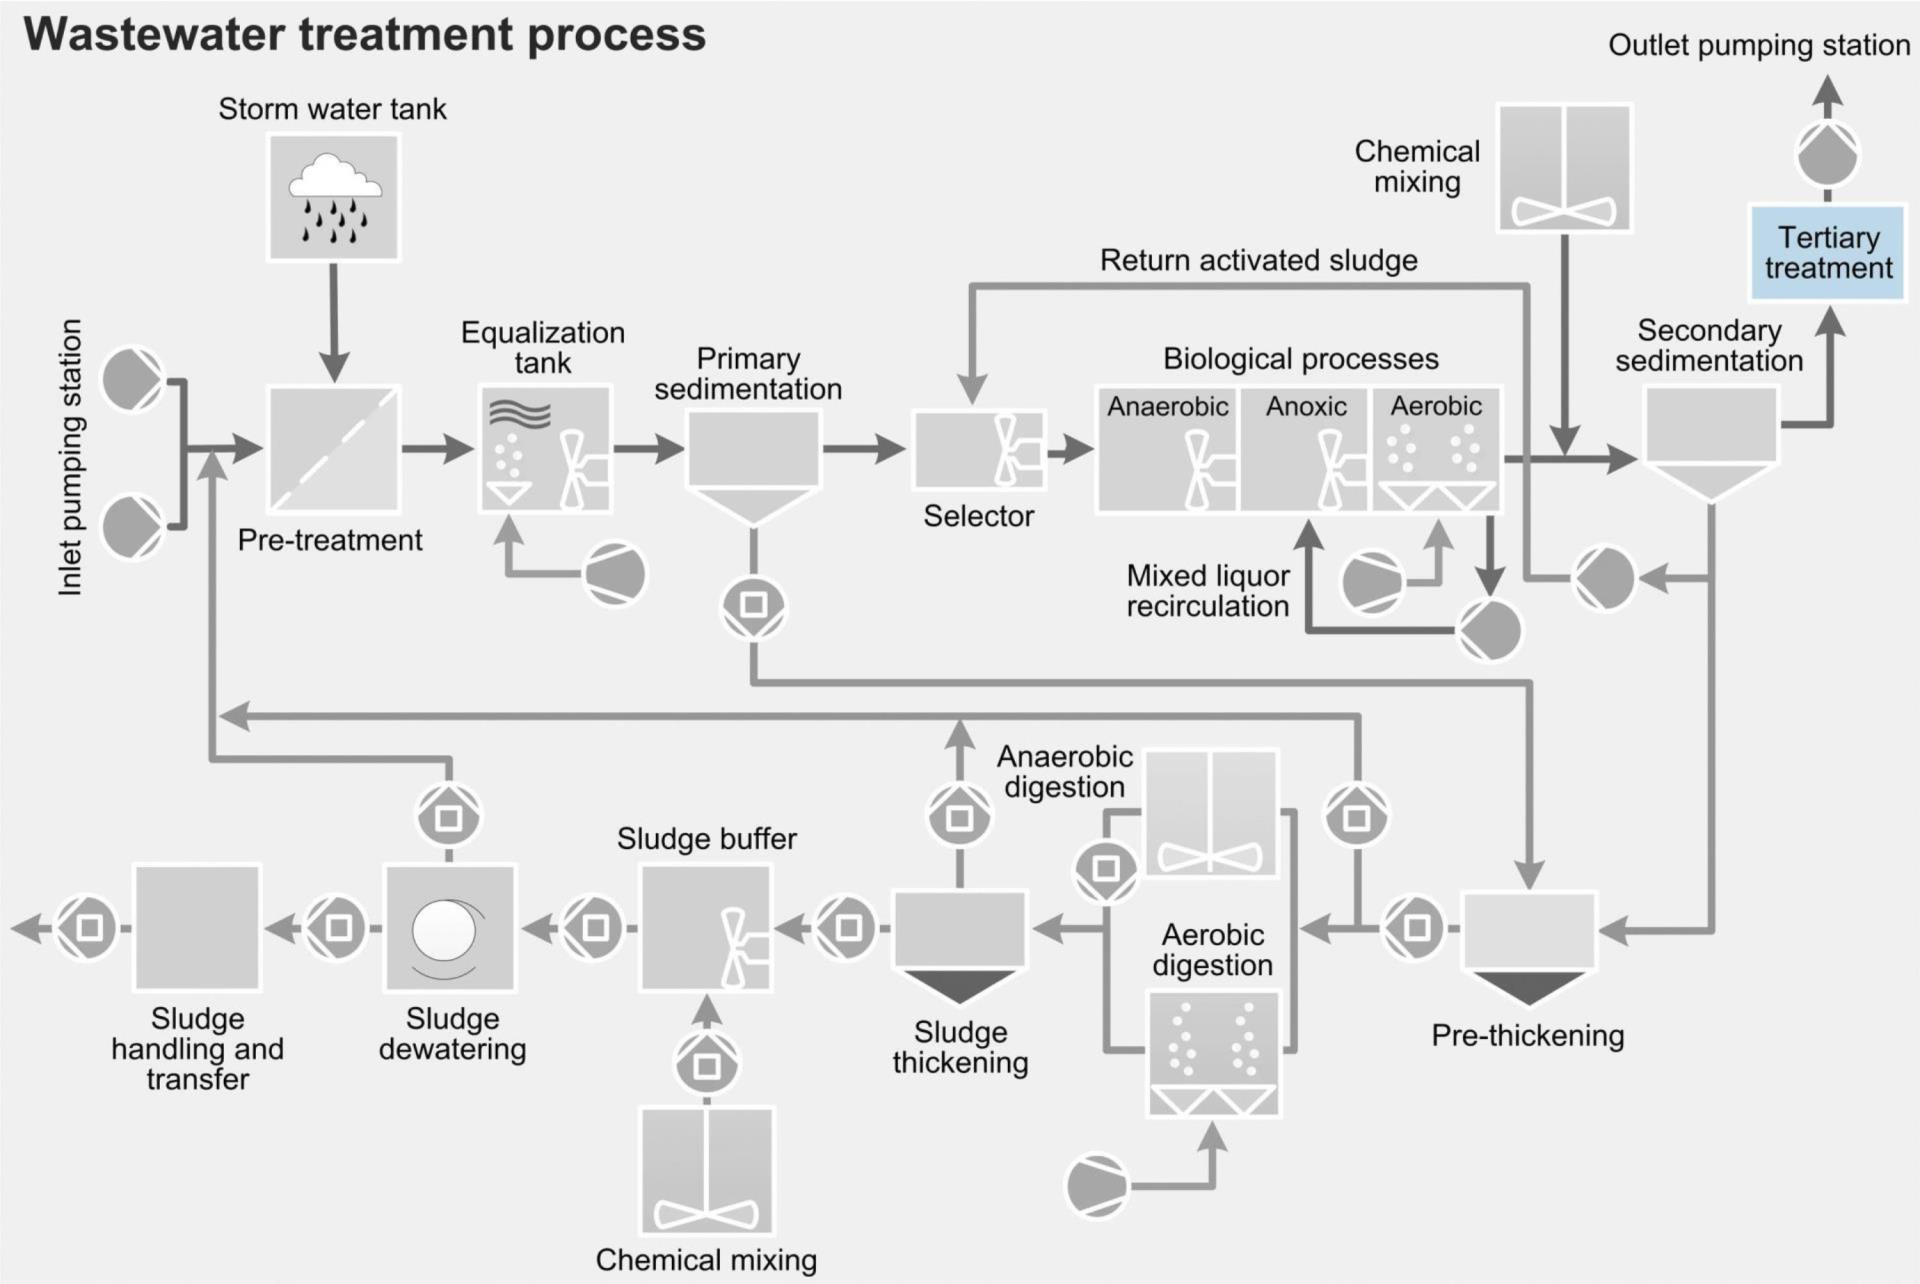 Tertiary treatment | Sulzer